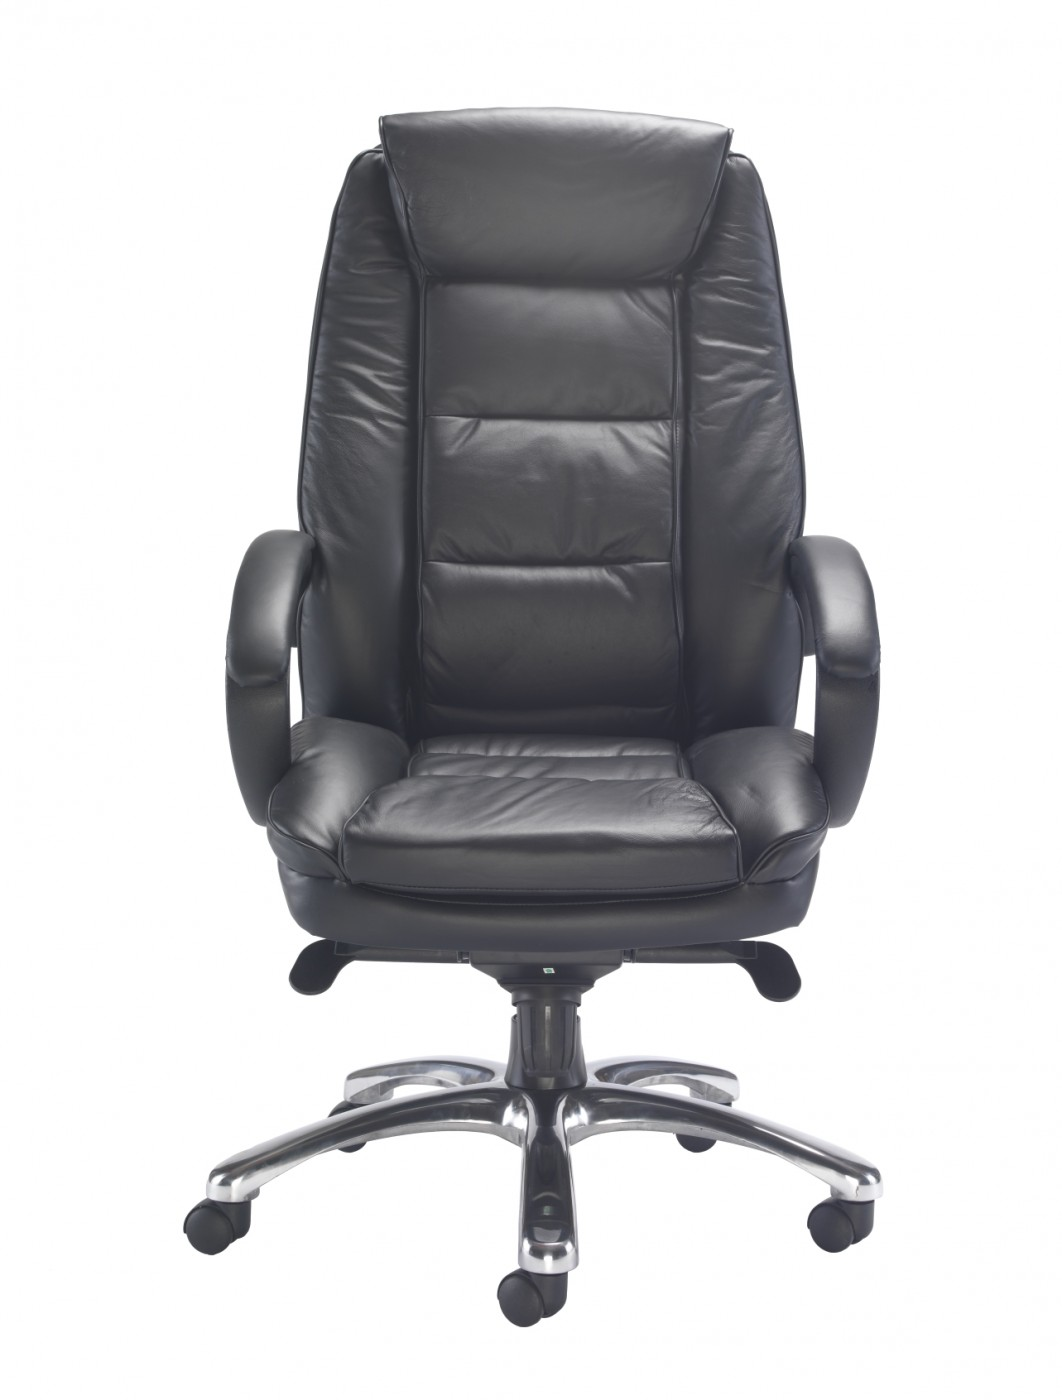 Montana Executive Leather Office Chair Ch0240 121 Office